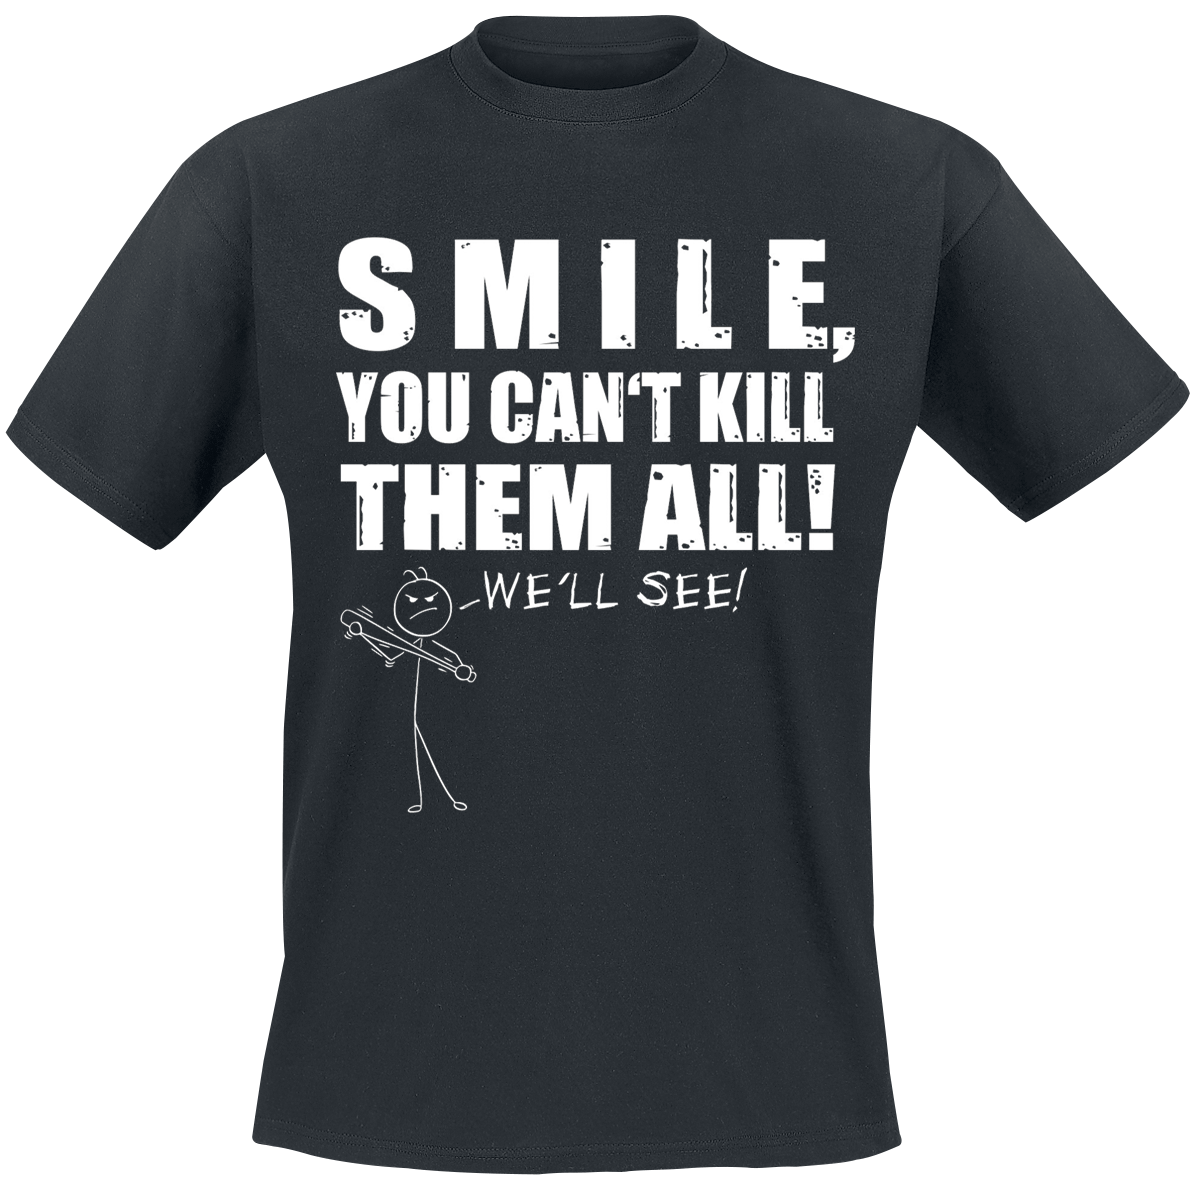 Smile, You Can't Kill Them All -  - T-Shirt - black image